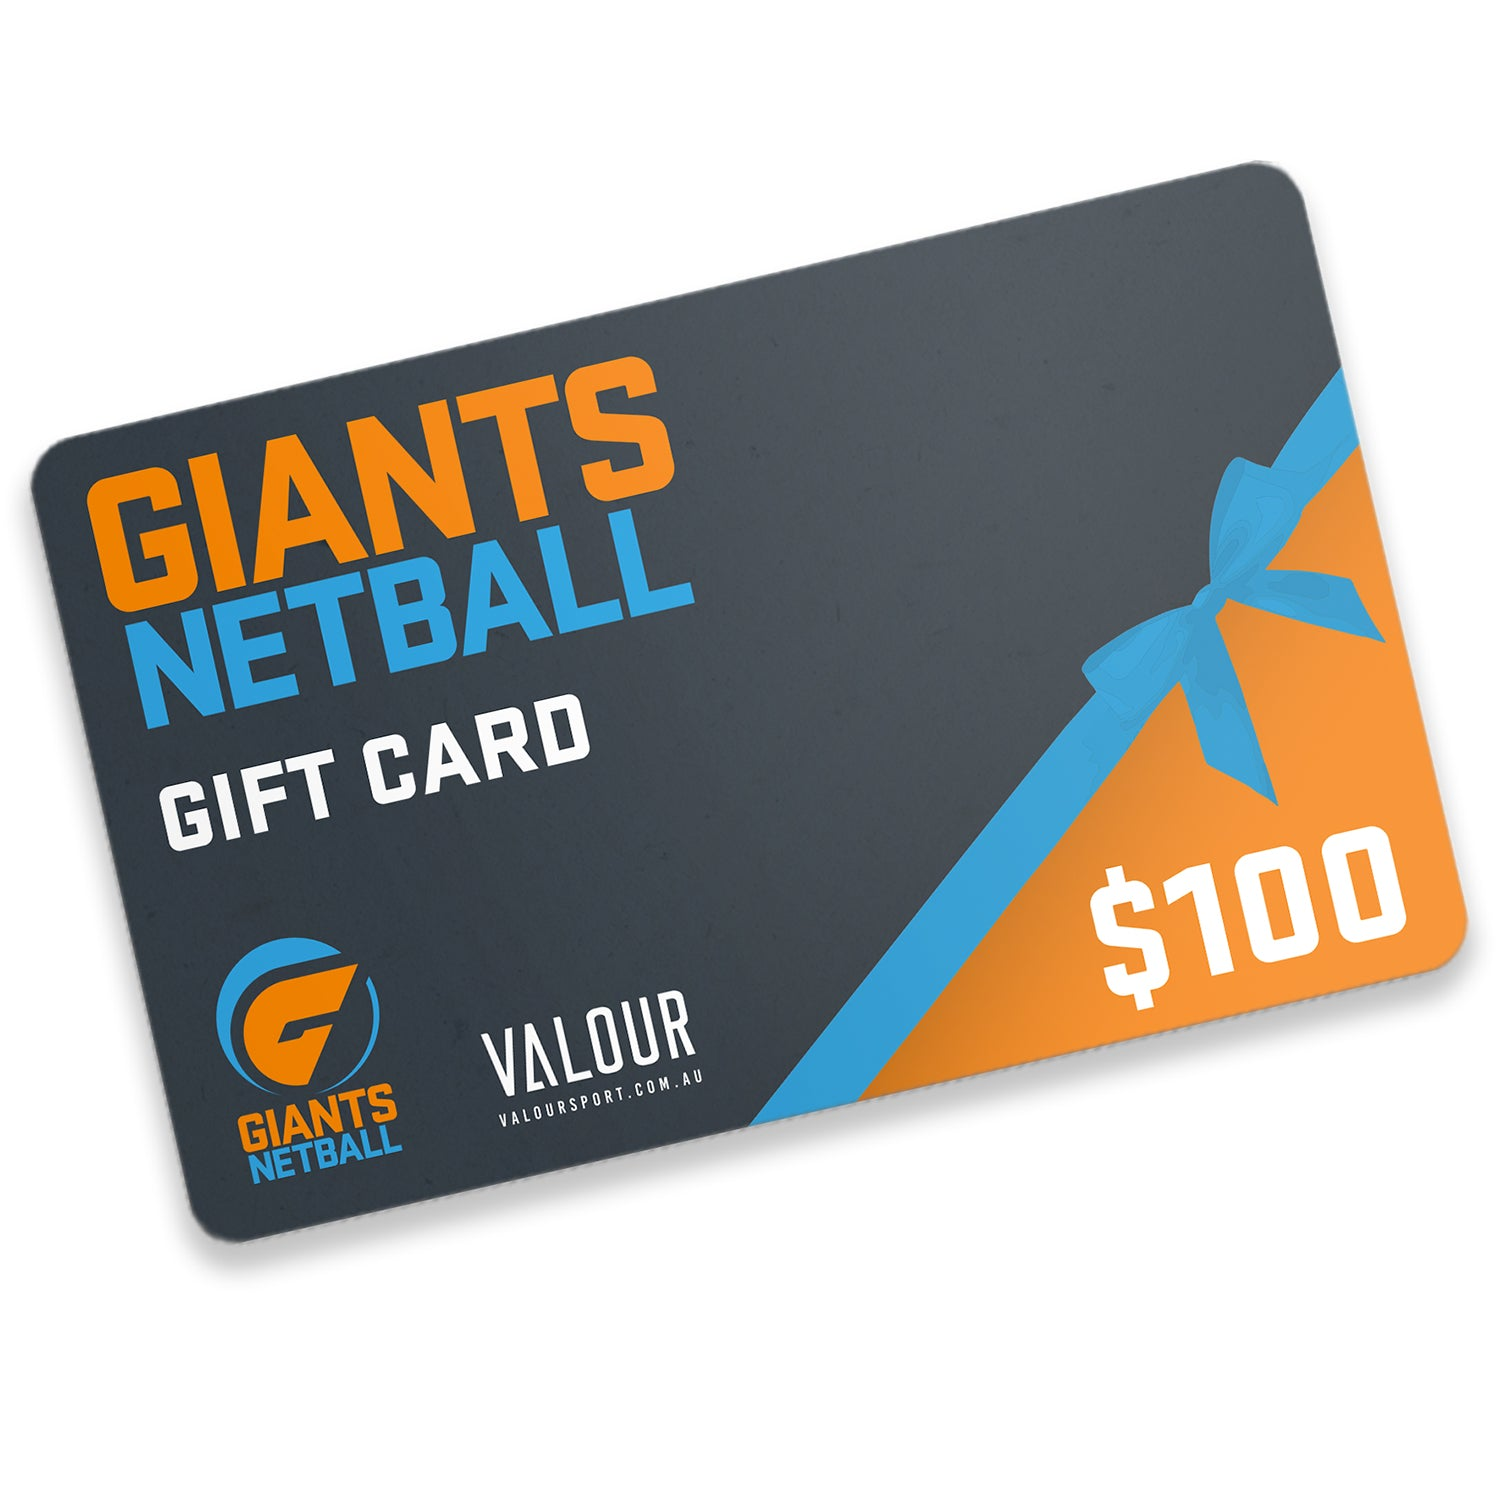 Giants Netball $100 Gift Card